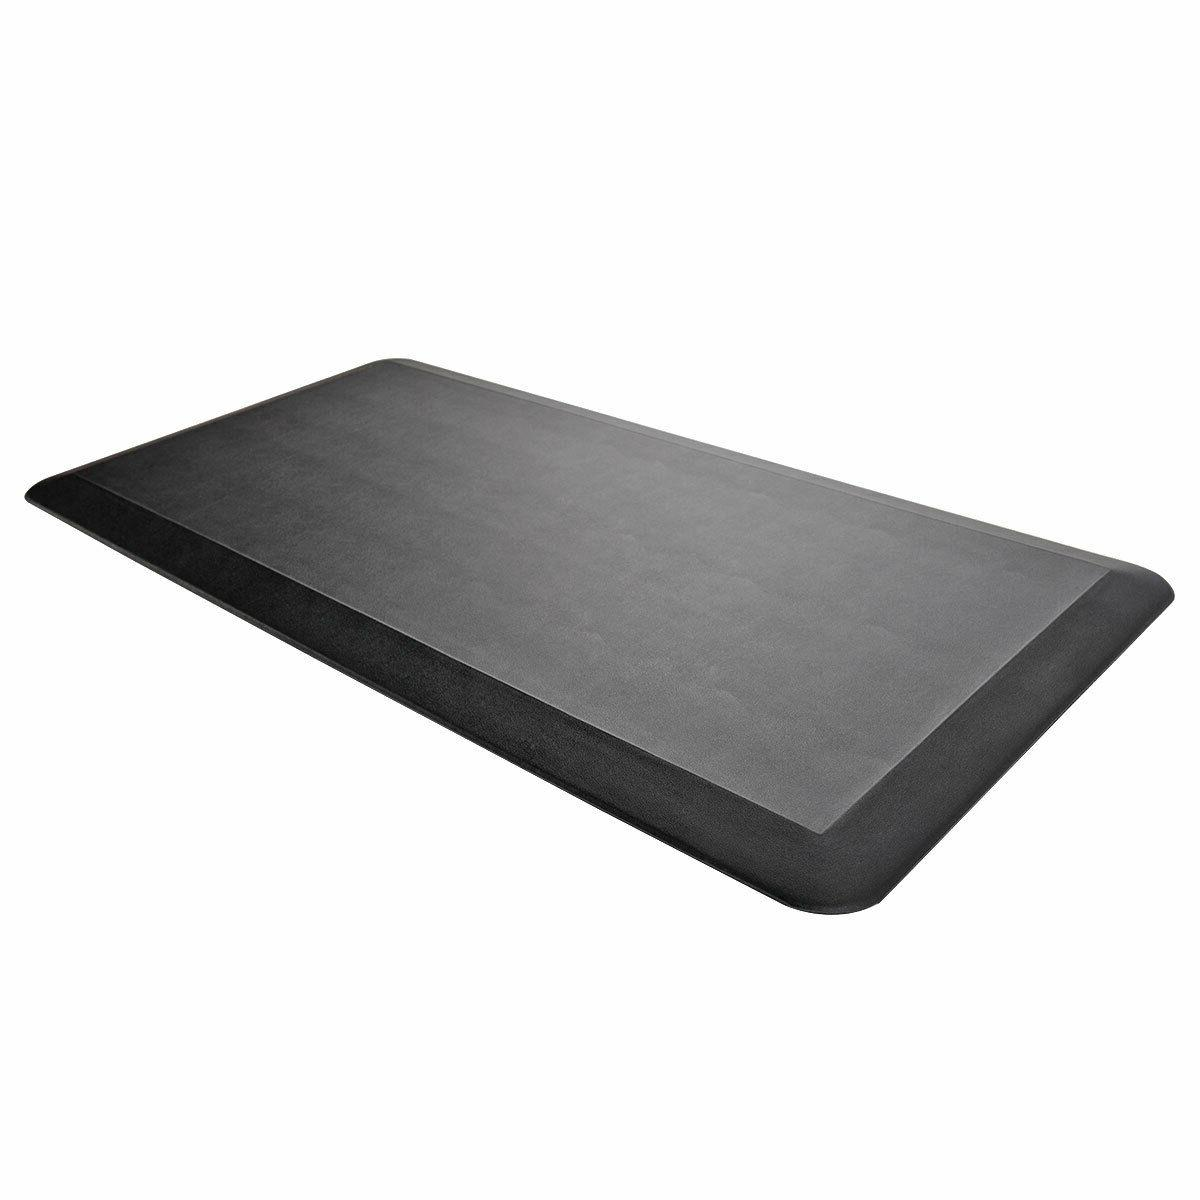 PVC Anti-Fatigue Office and Desk Floor Mat